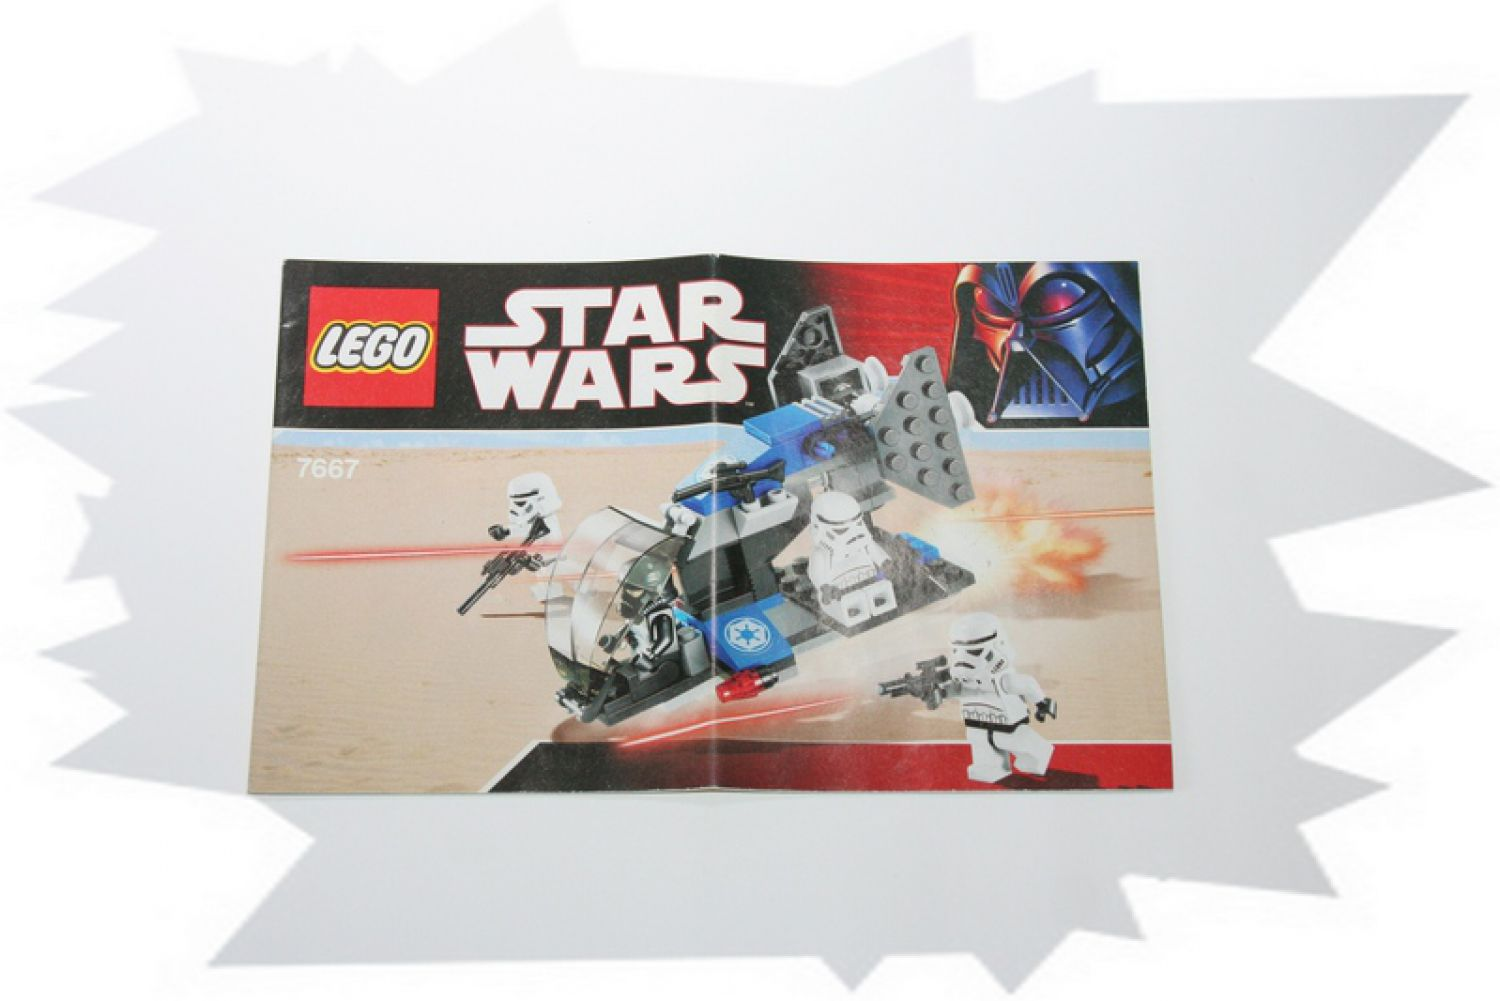 7667 lego bauanleitung instruction star wars imperial dropship neu ebay. Black Bedroom Furniture Sets. Home Design Ideas